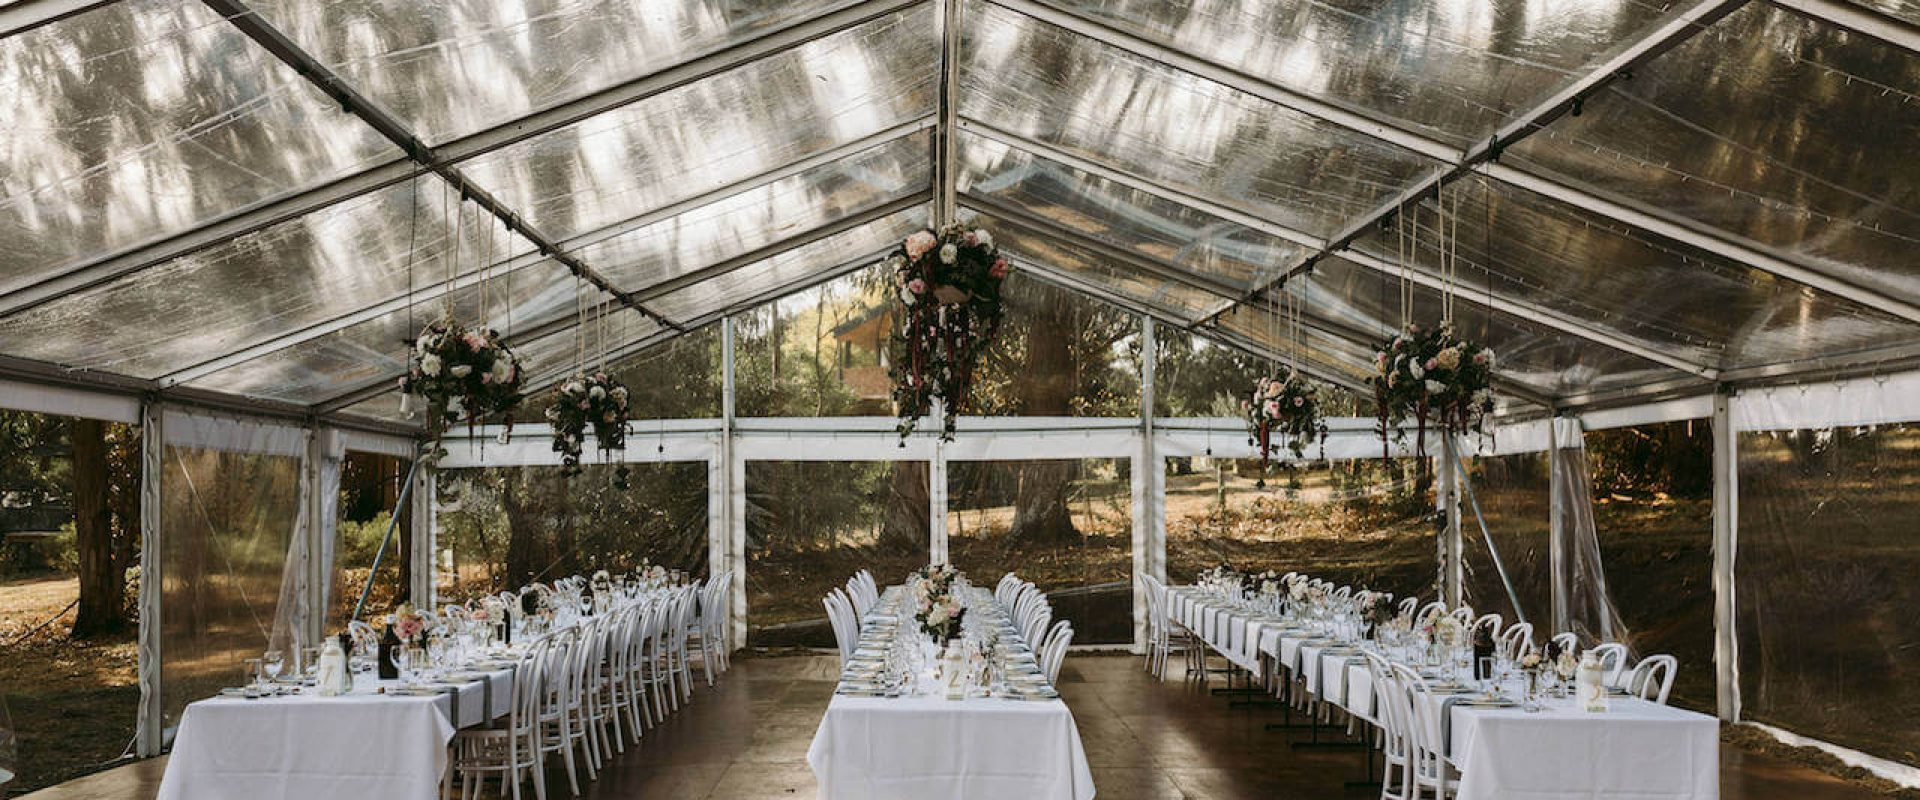 White Umbrella Marquees Marquee Hire In Melbourne Gazebo Hire In Melbourne Celebrate